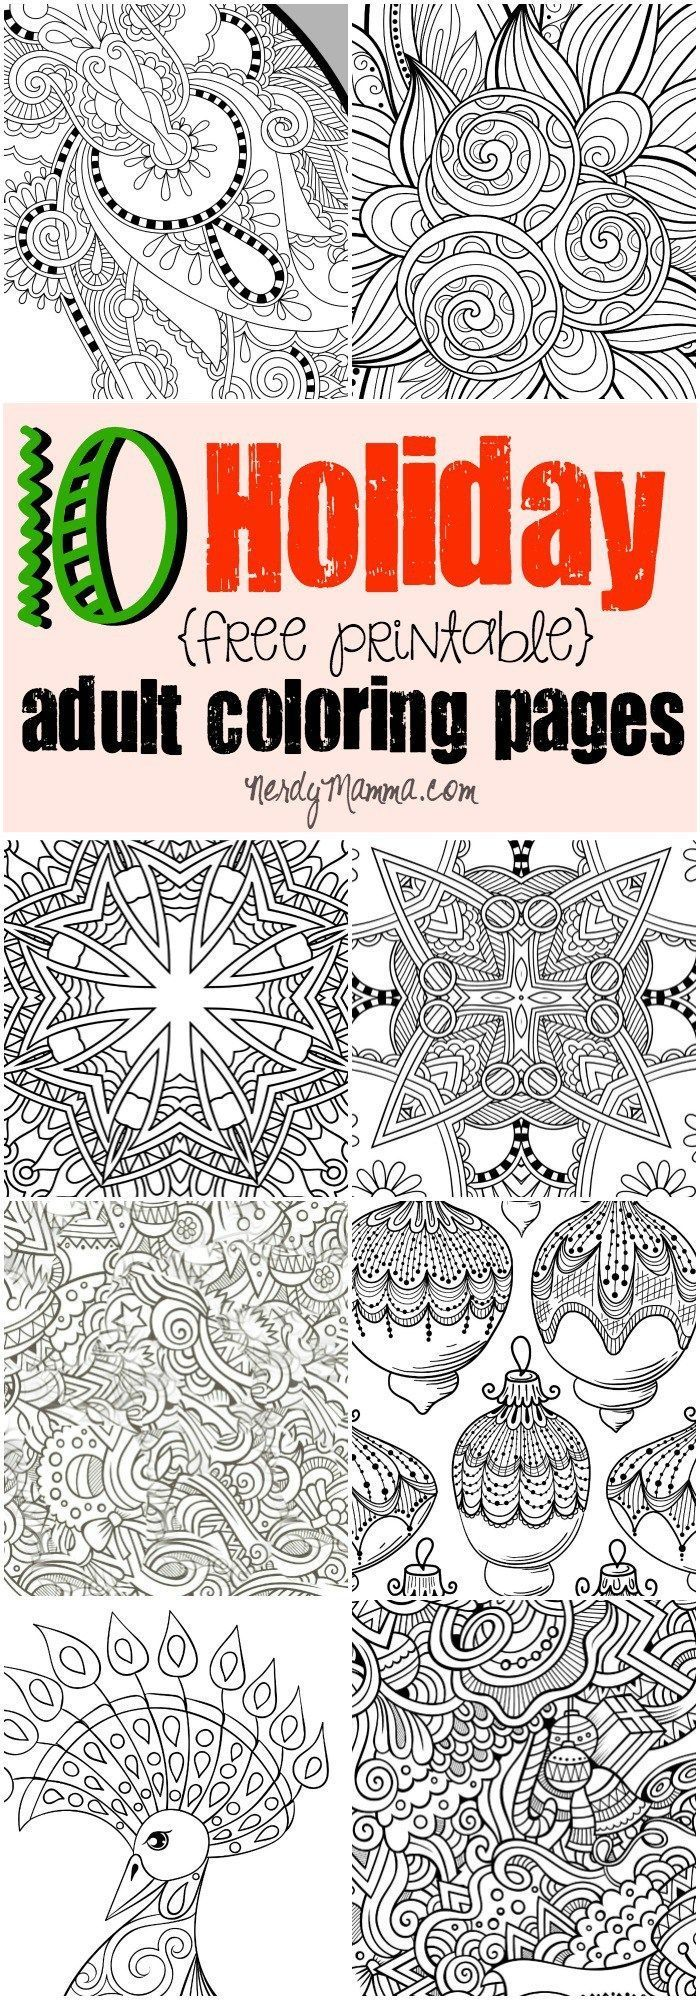 10 Free Printable Holiday Adult Coloring Pages